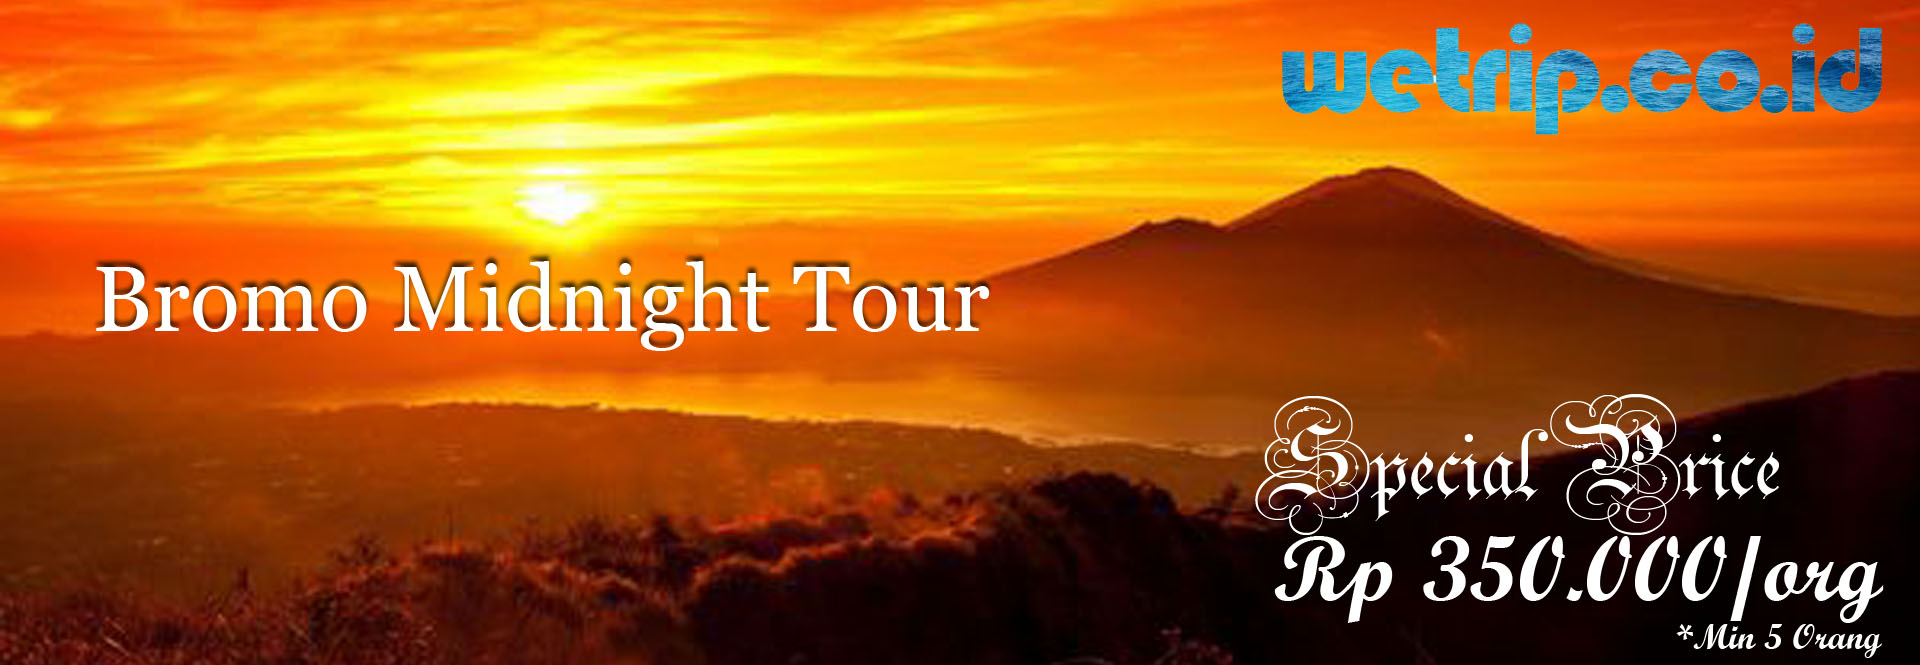 Wetrip HMC Tour Bromo Midnight Nite Tour Promo